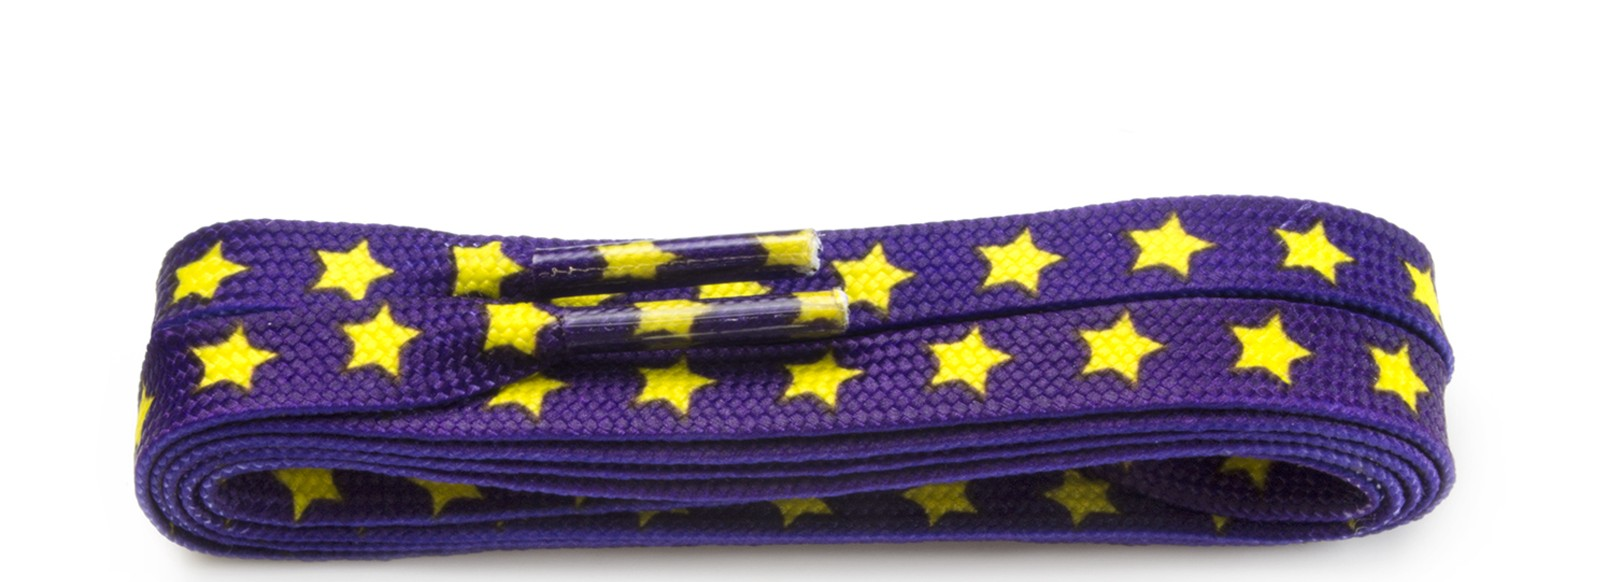 Sneaker Purple Yellow Stars